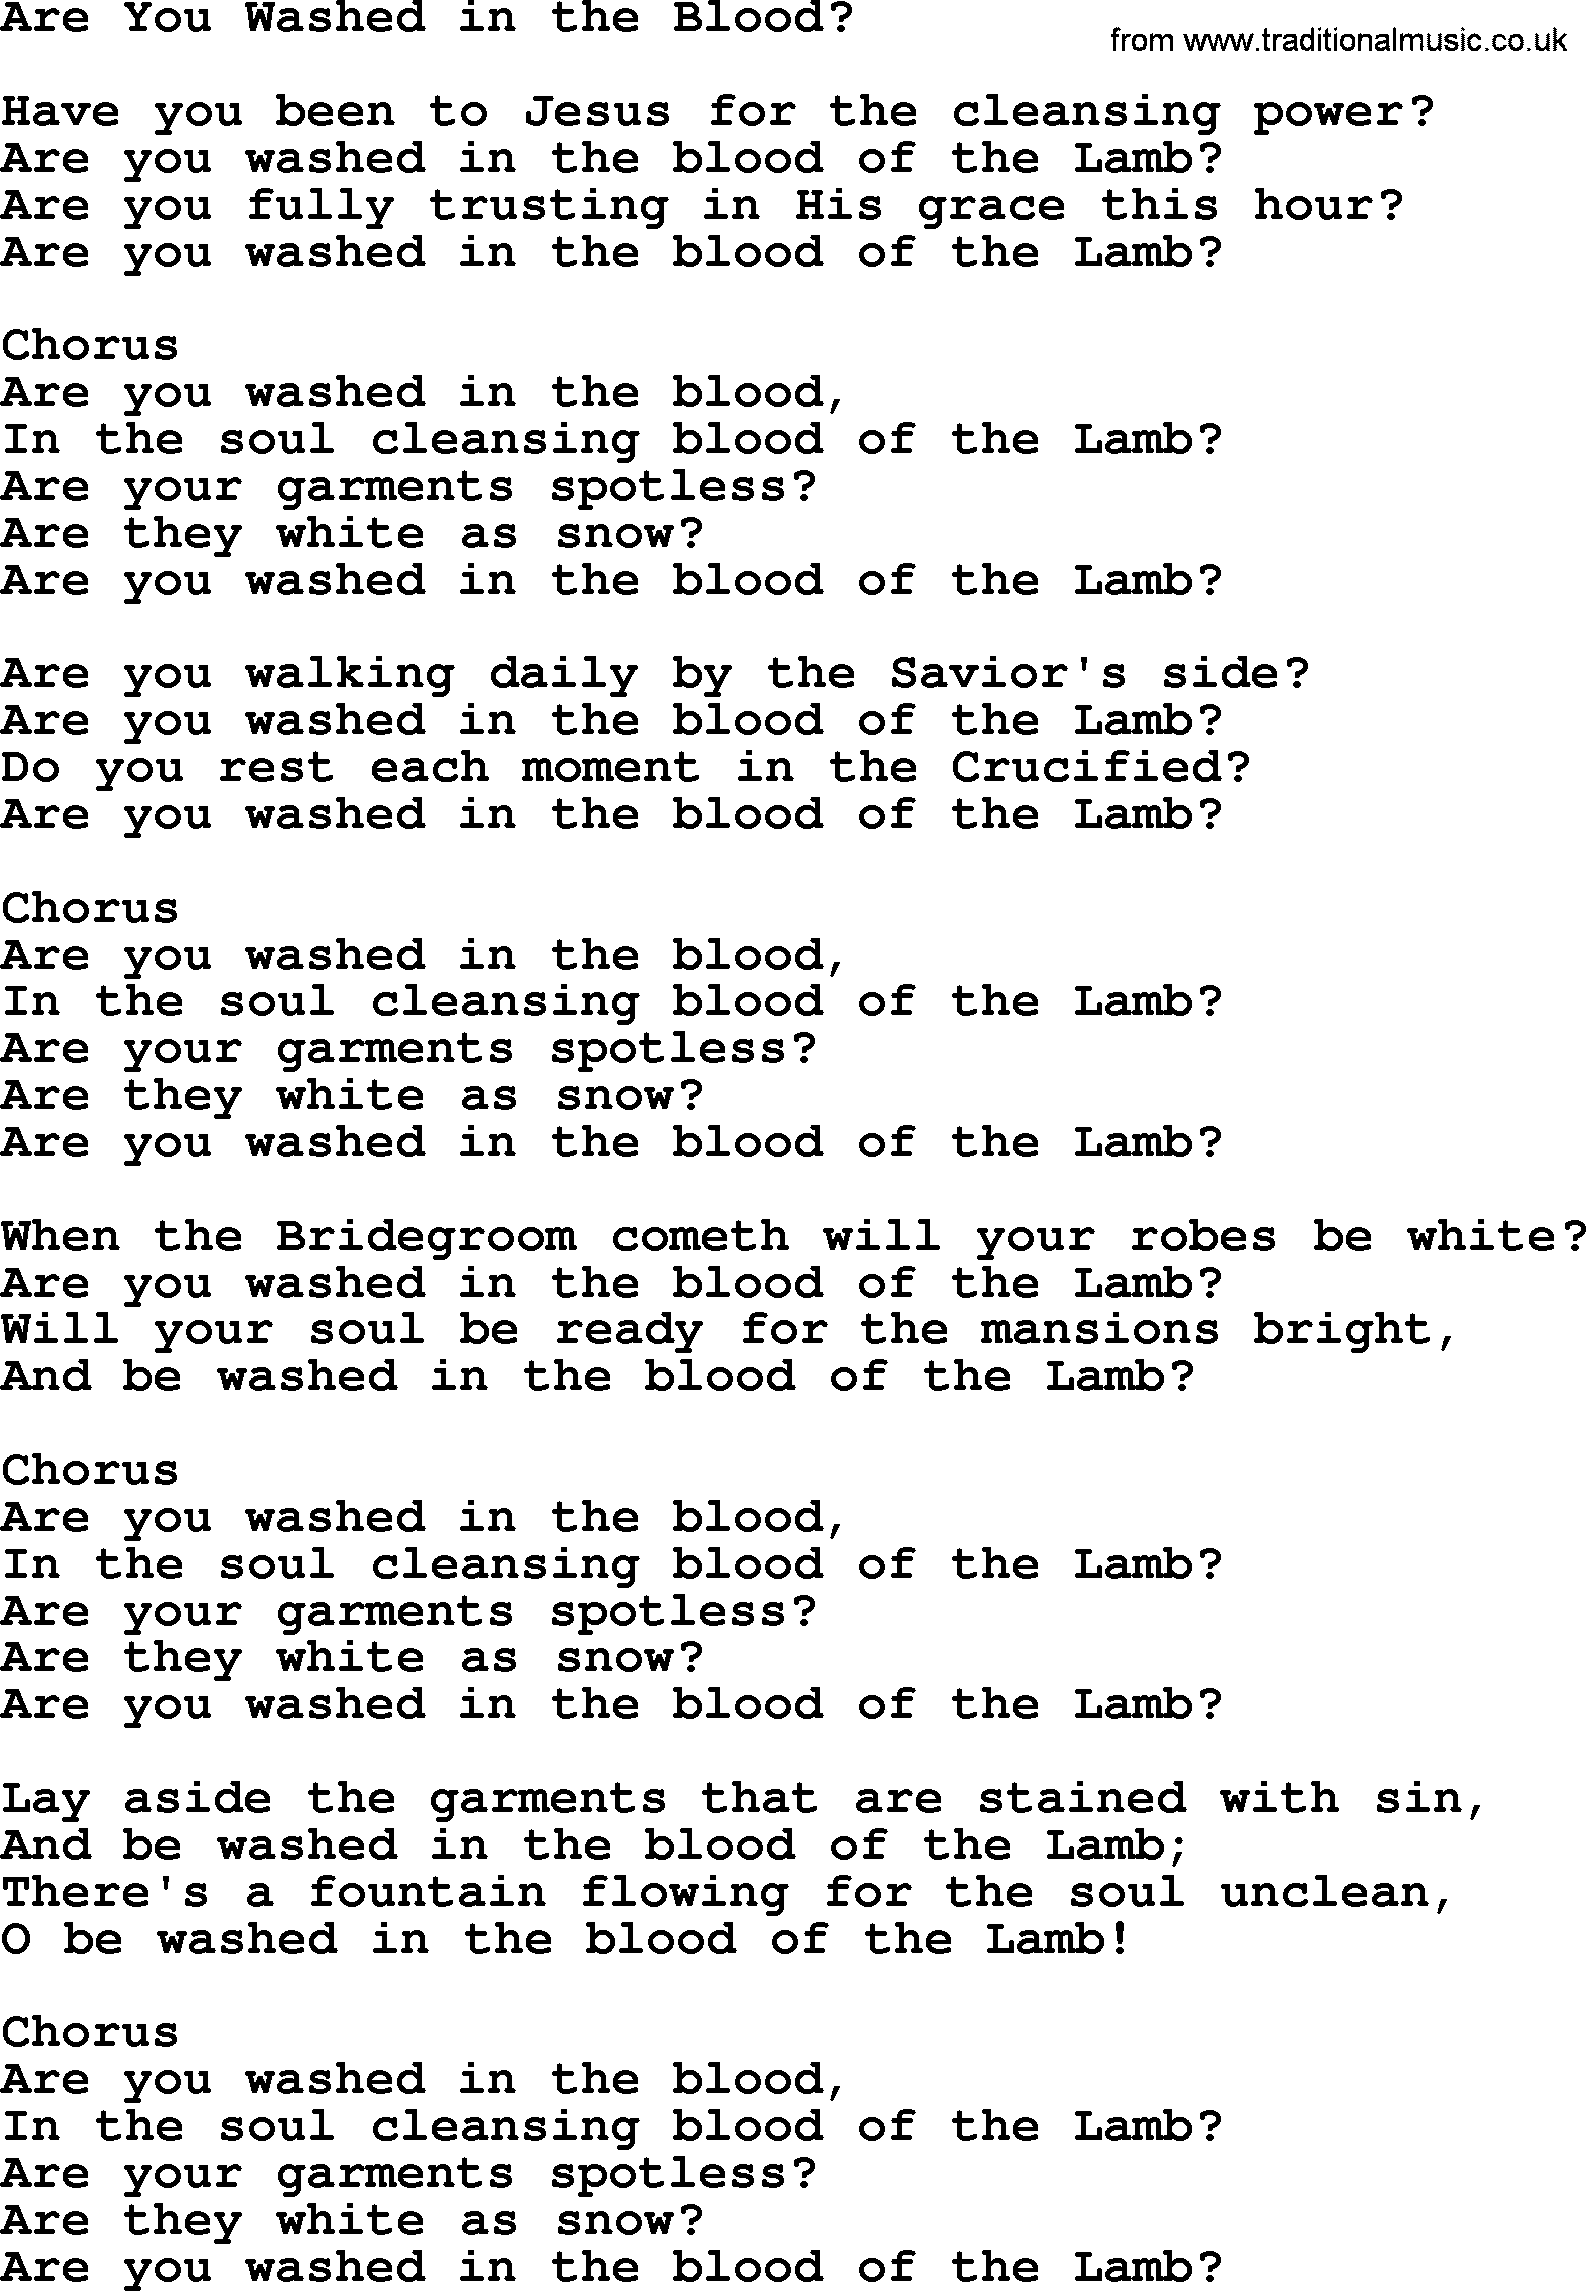 Are You Washed in the Blood (Hymn Charts with Lyrics ...